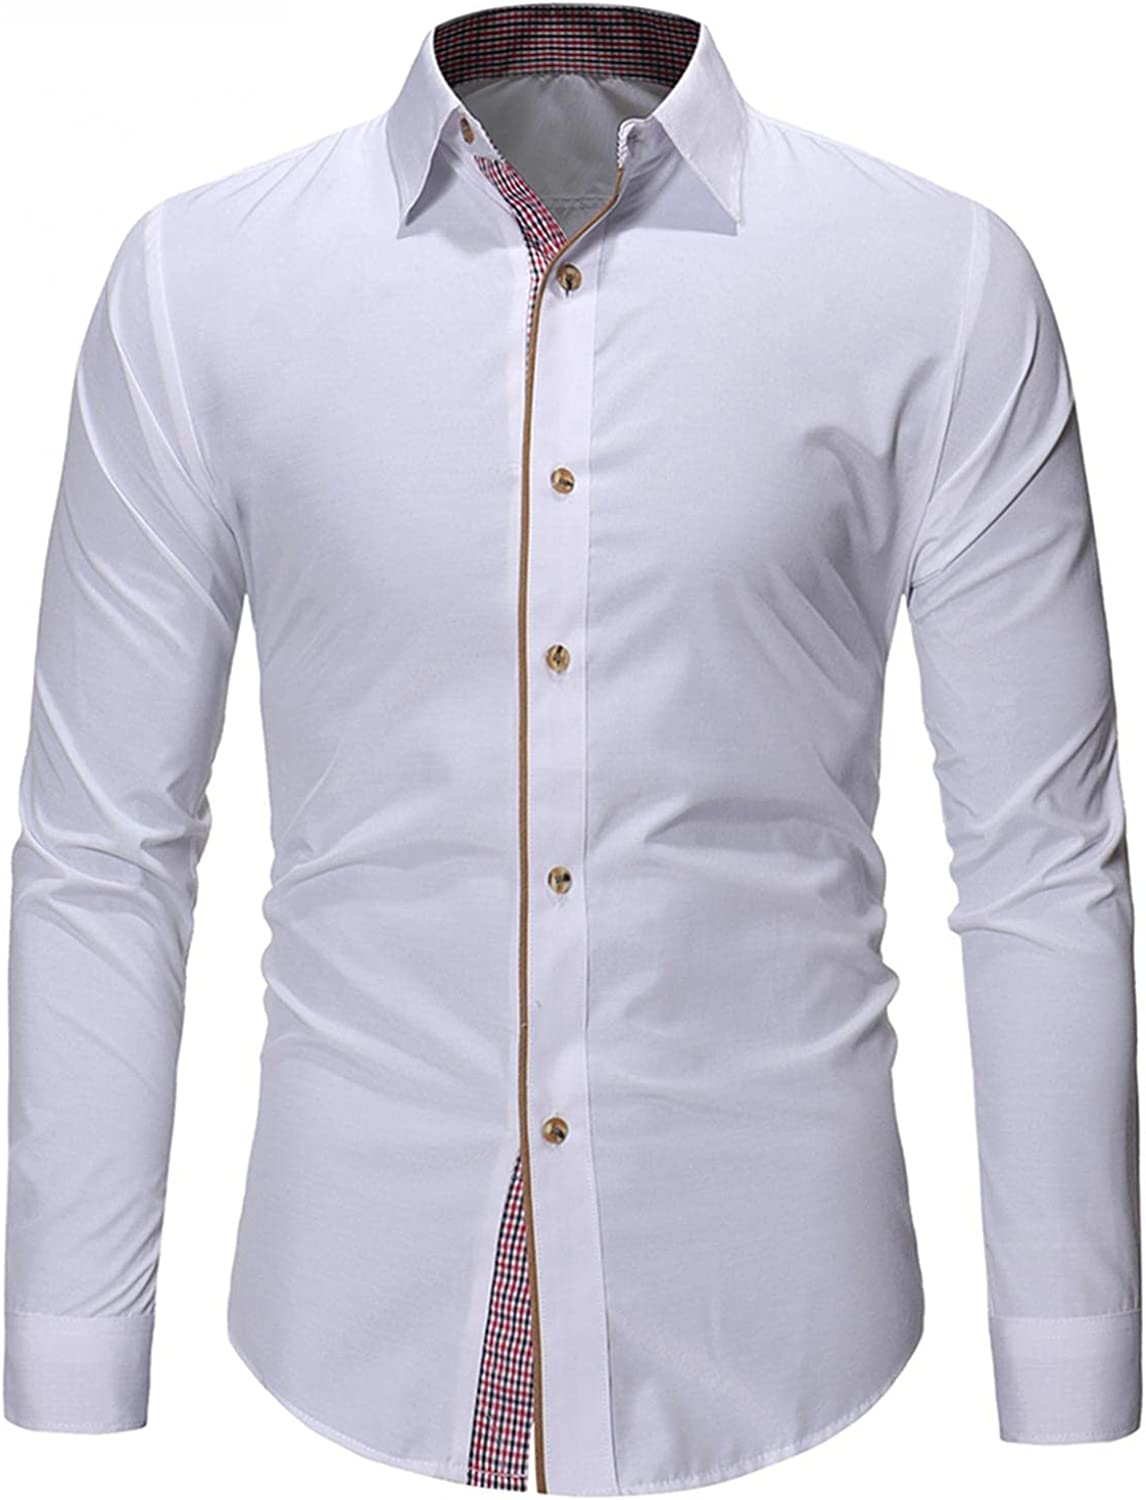 KEEYO Mens Slim Fit Dress Shirts Long Sleeve Business Work Casual Wrinkle-Free Poplin Button Down Cotton Shirts Tops